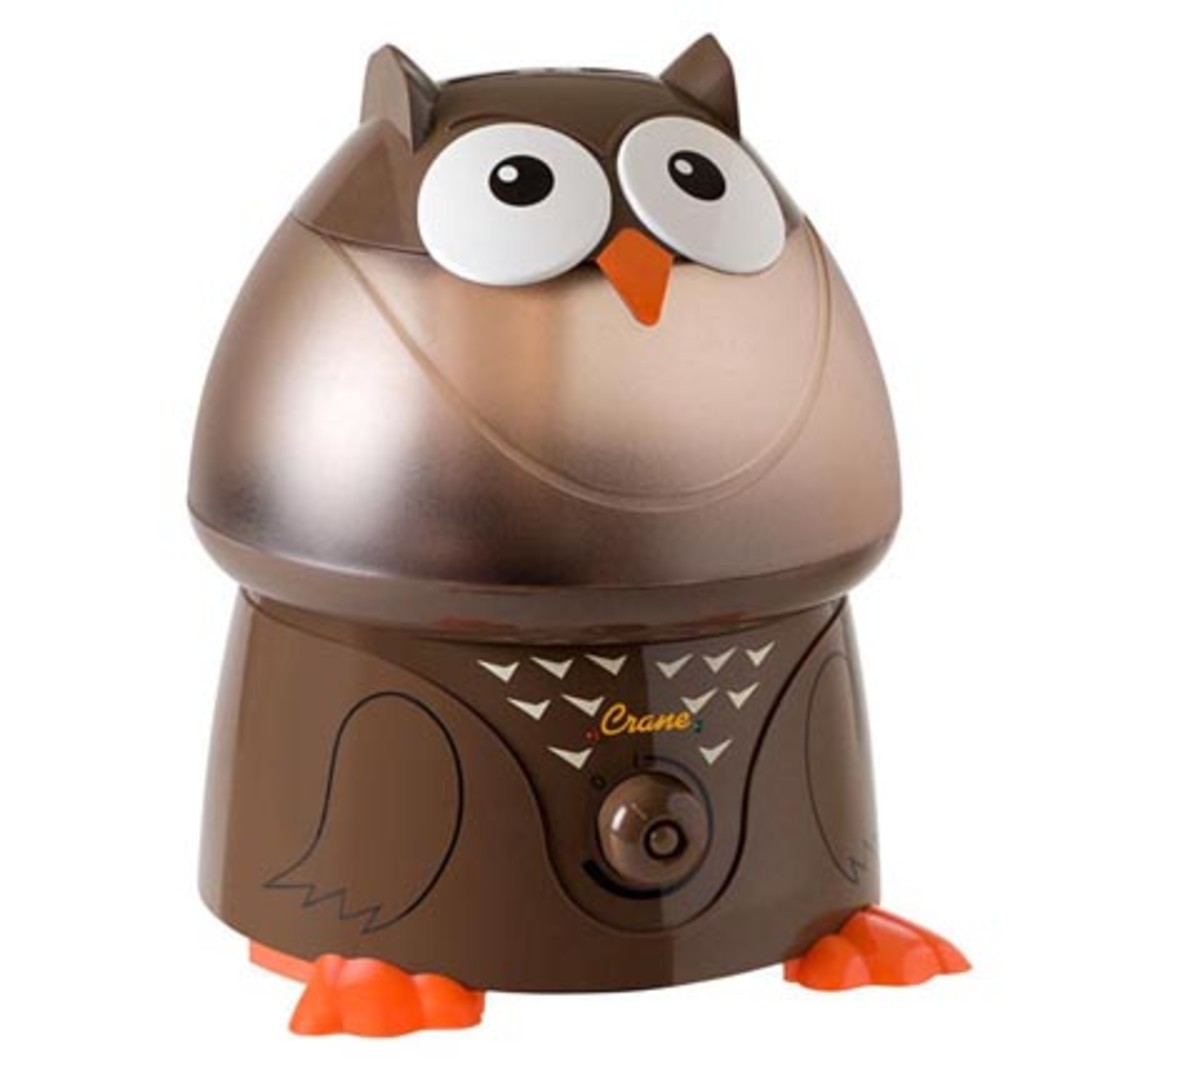 Cutest Humidifiers Just What The Doctor Ordered